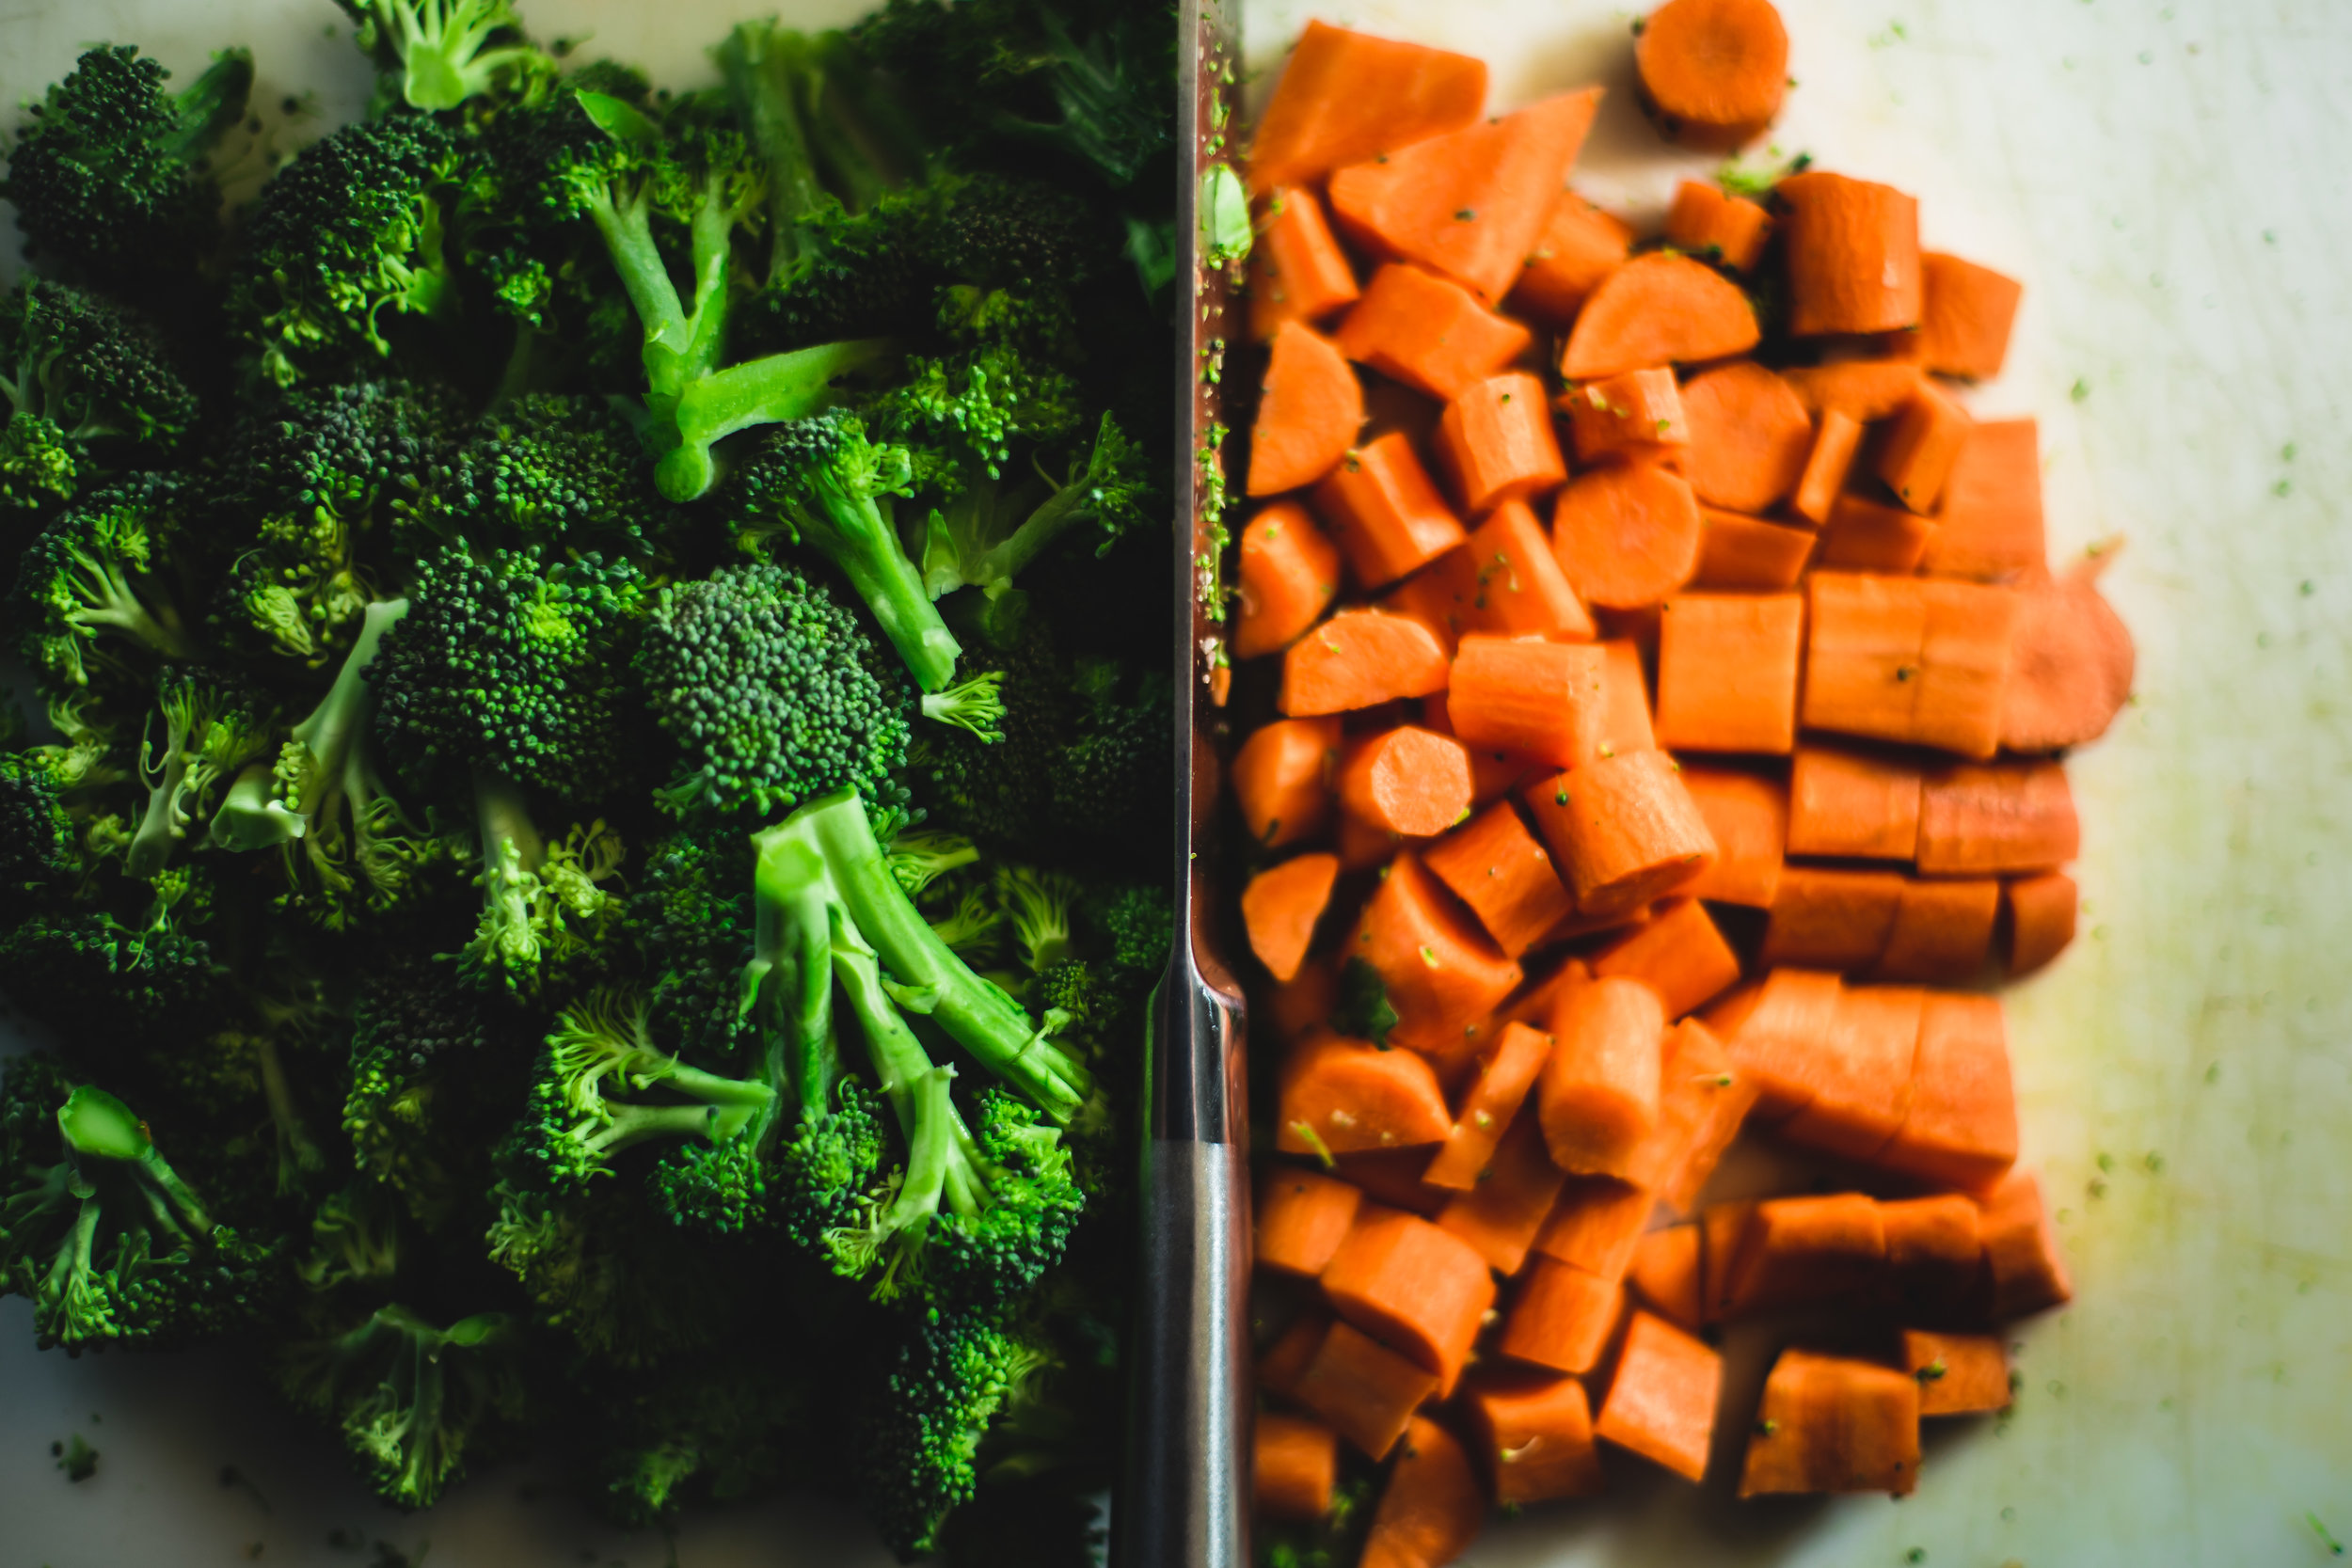 Broccoli + Carrot - The Youth Academy